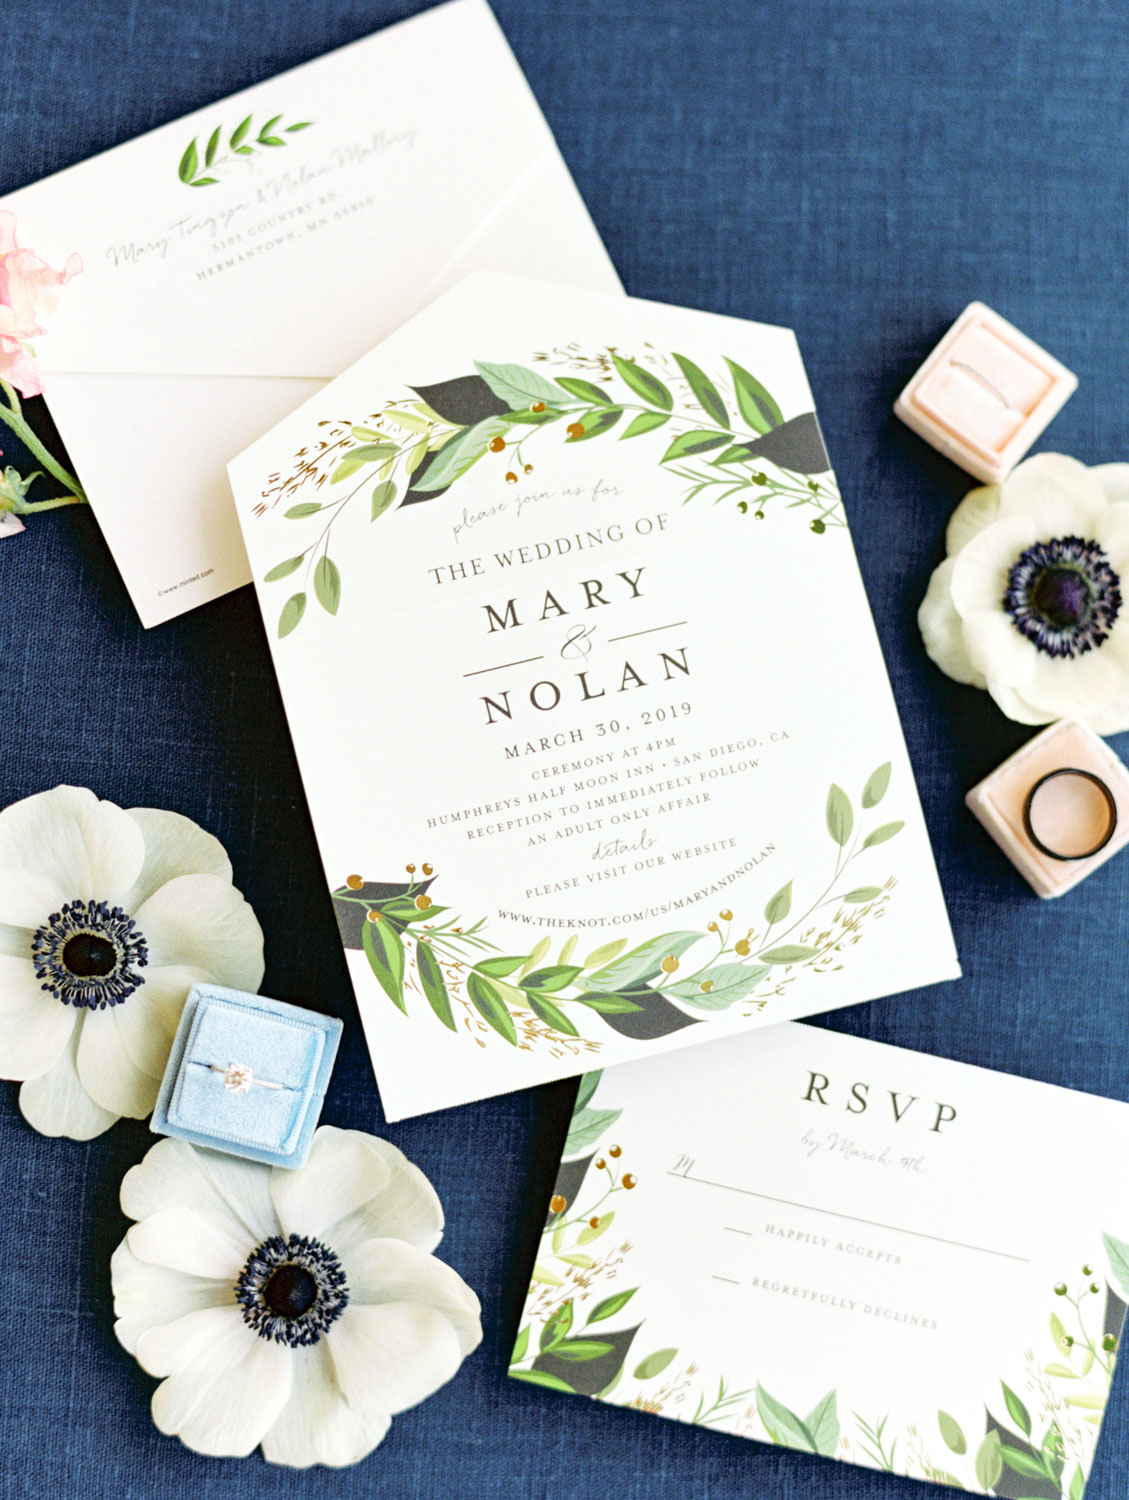 Solitaire engagement ring in blue velvet ring box surrounded by anemones and ivory and green invitation on film, Wedding at Humphreys Half Moon Inn by Cavin Elizabeth Photography